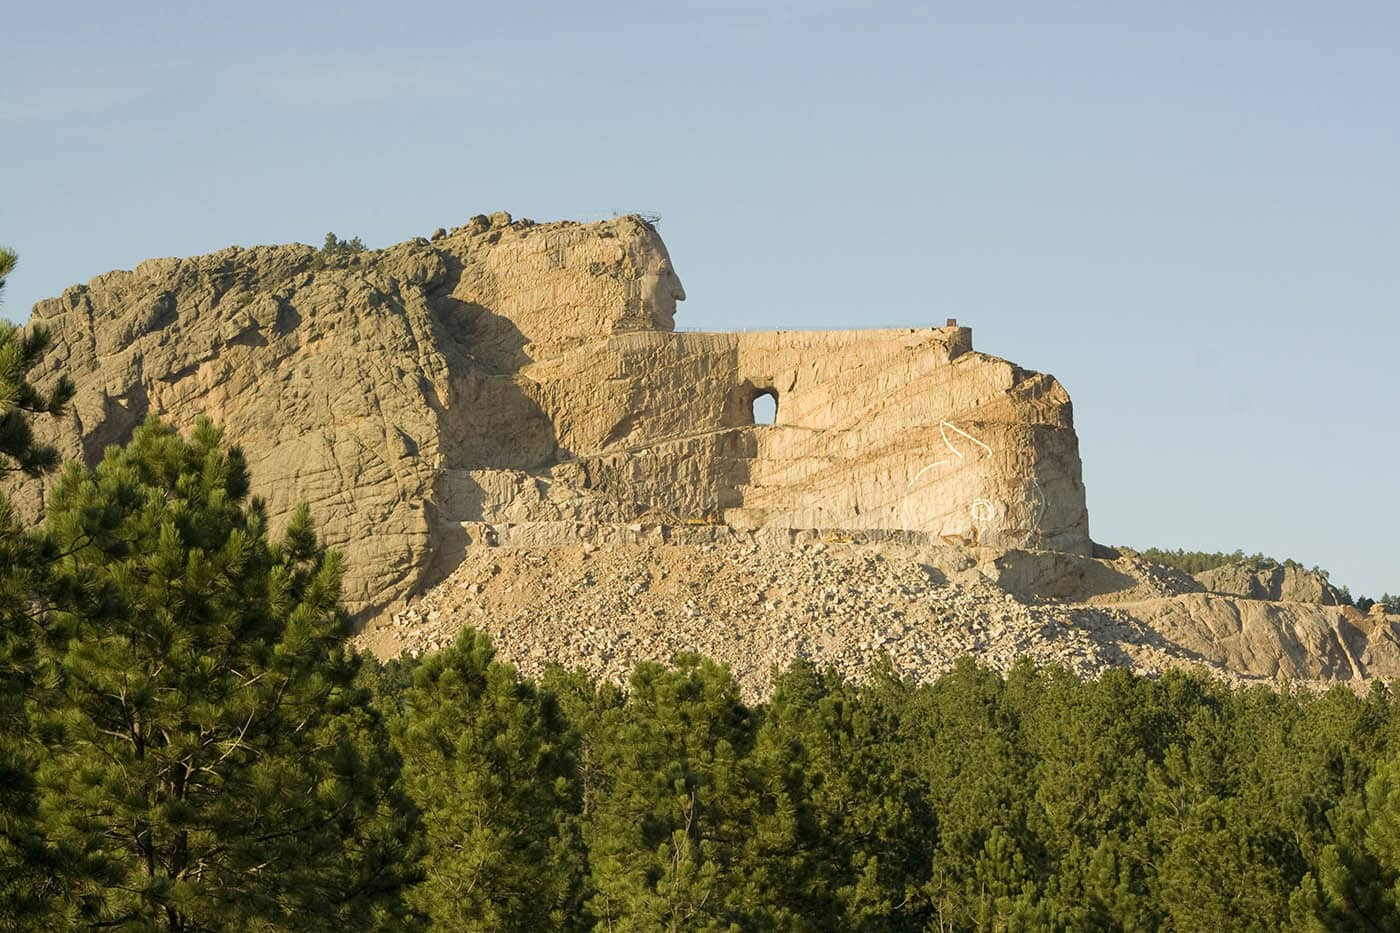 Chief Crazy Horse Memorial in Crazy Horse, South Dakota. Labor Day Chicago to Mount Rushmore Road Trip.